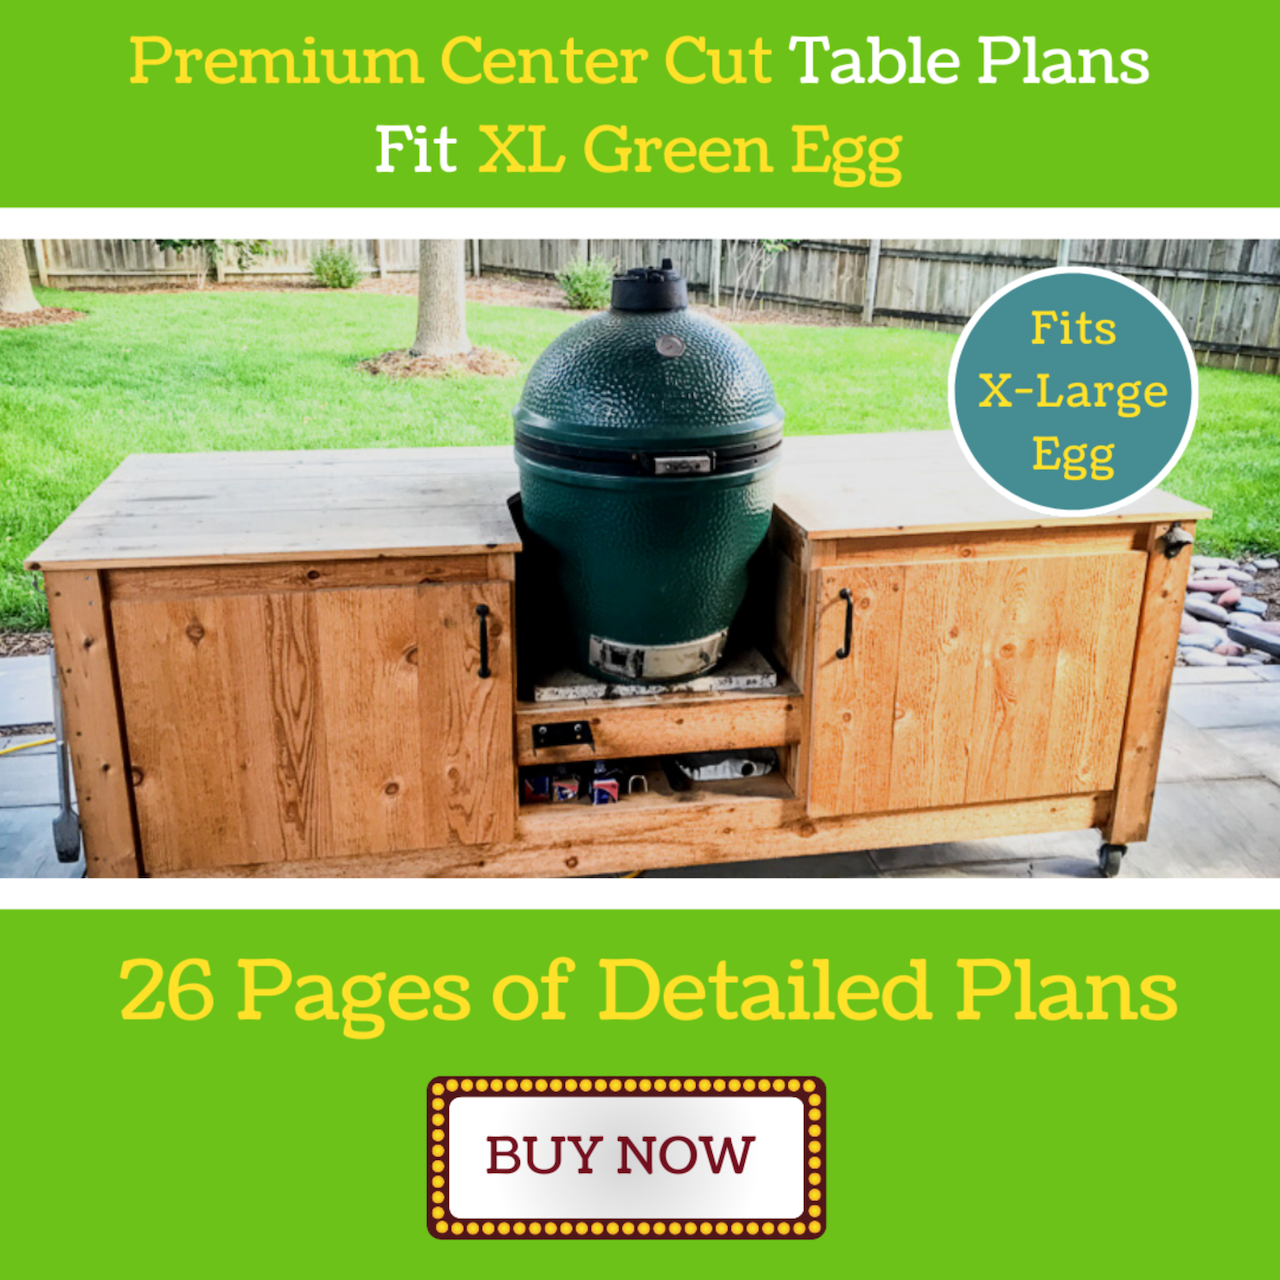 Premium Center Cut Table for XL Green Egg